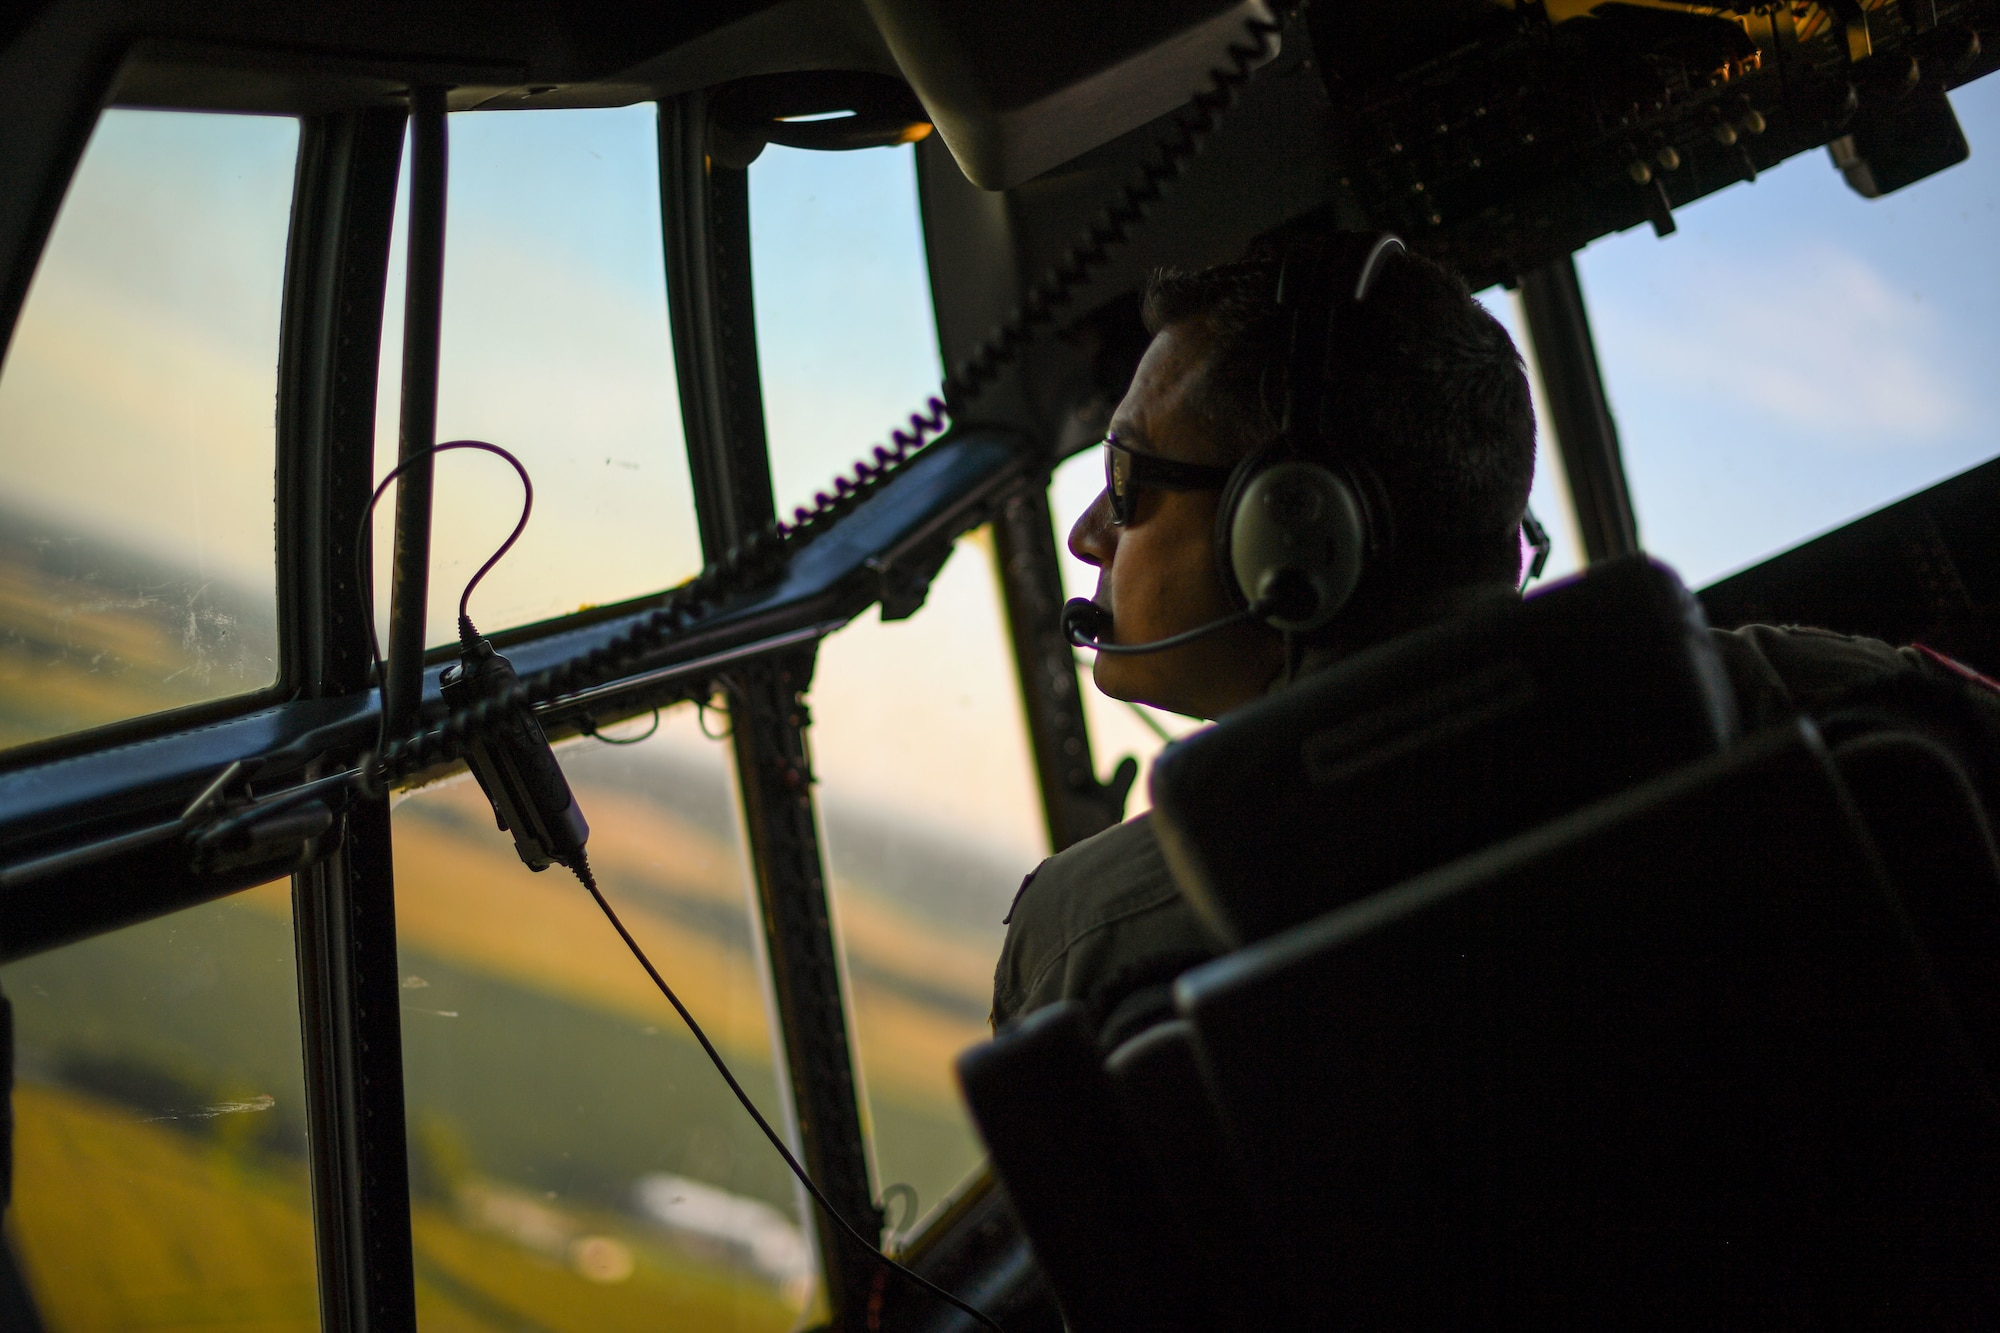 Maj. Aaron Sanchez, 815th Airlift Squadron pilot assigned to the 403rd Wing, Keesler Air Force Base, Mississippi, flies a U.S. Air Force C-130J Super Hercules aircraft from Fort McCoy Army Airfield for aeromedical evacuation training during exercise Patriot Warrior at Fort McCoy, Wisconsin, Aug. 14, 2021. Patriot Warrior is the Air Force Reserve Command's premier exercise providing Airmen an opportunity to train with joint and international partners in airlift, aeromedical evacuation, and mobility support. The exercise builds on capabilities for the future fight, increasing the readiness, lethality and agility of the Air Force Reserve. (U.S. Air Force Photo by Tech. Sgt. Corban Lundborg)